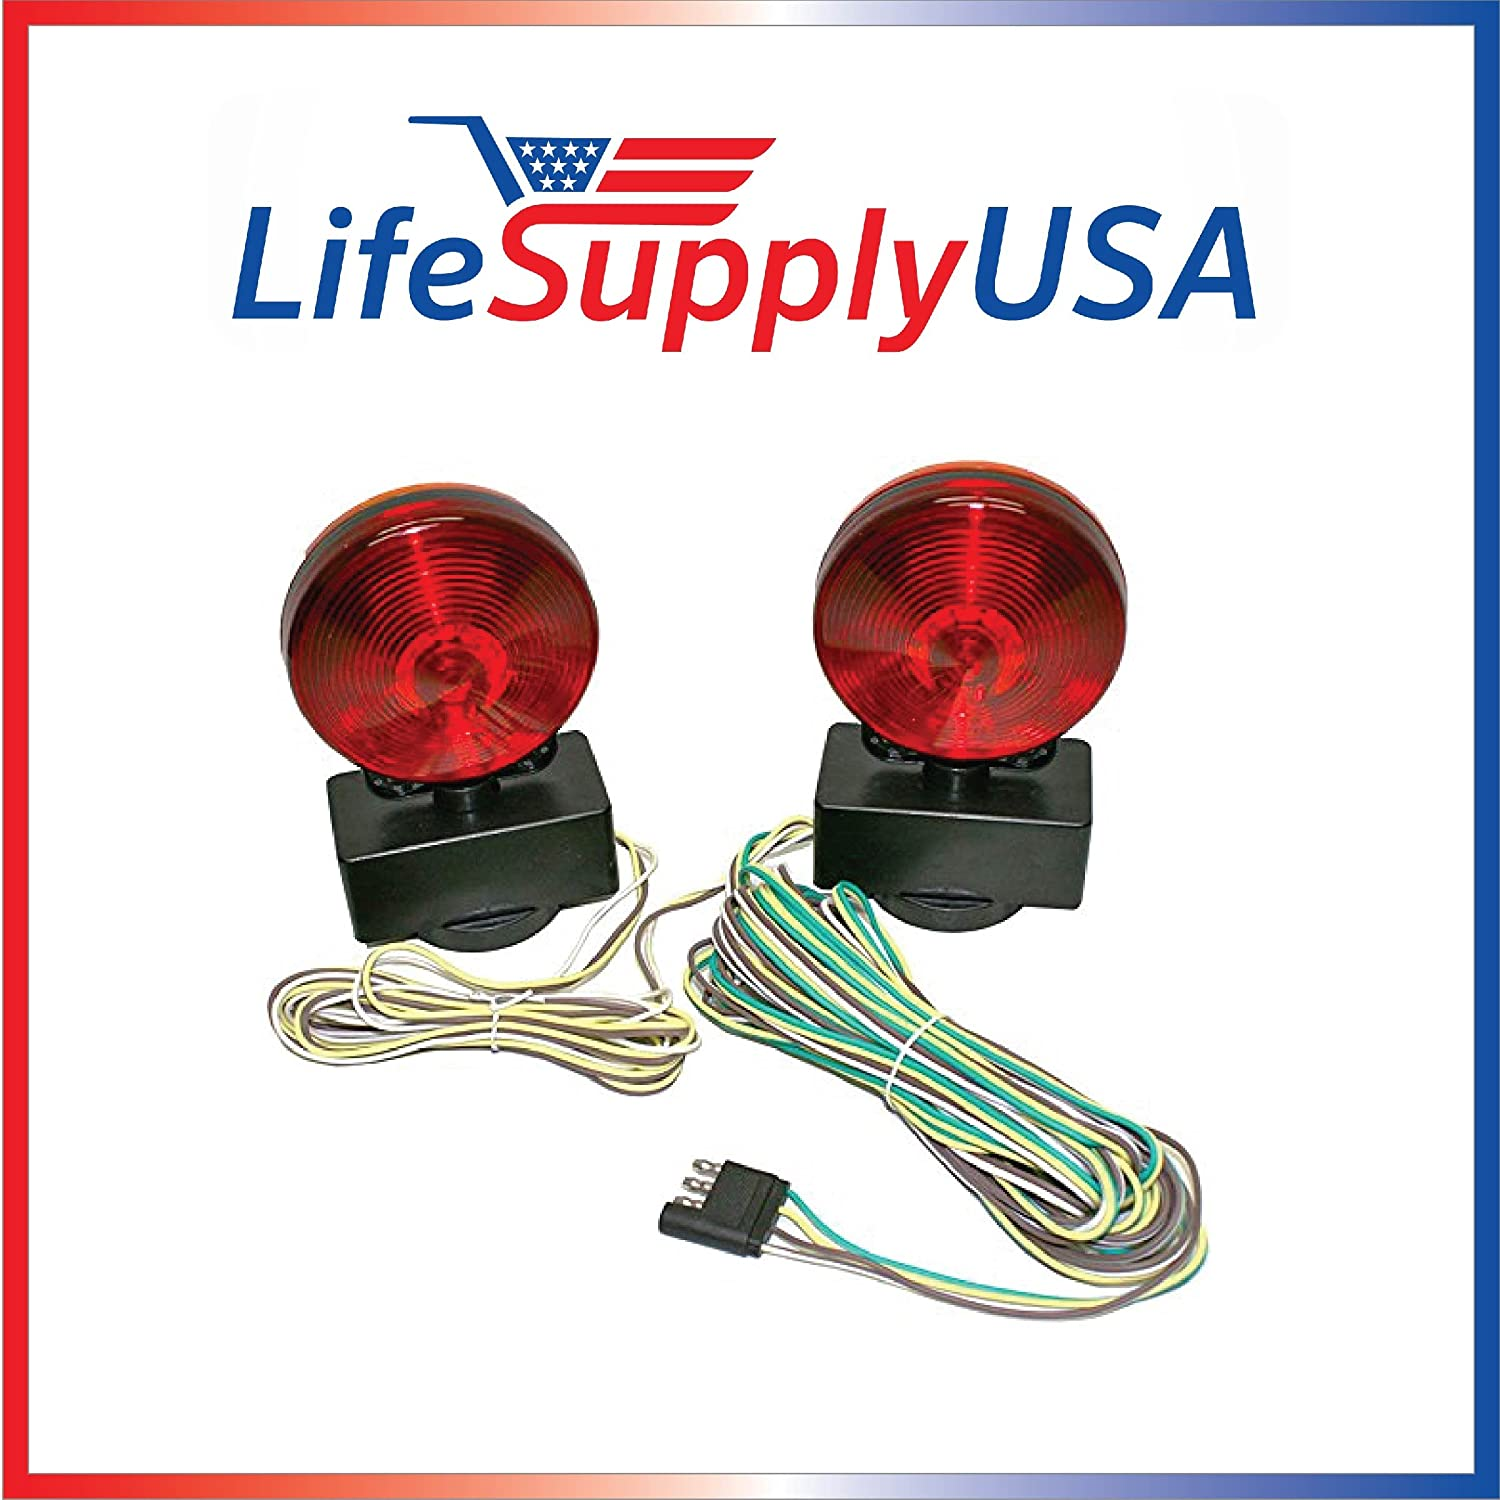 Easy Install 12 Volt Magnetic Towing Trailer Light Tail Ford F 150 Wiring Harness On Camper Diagram Lights Automotive